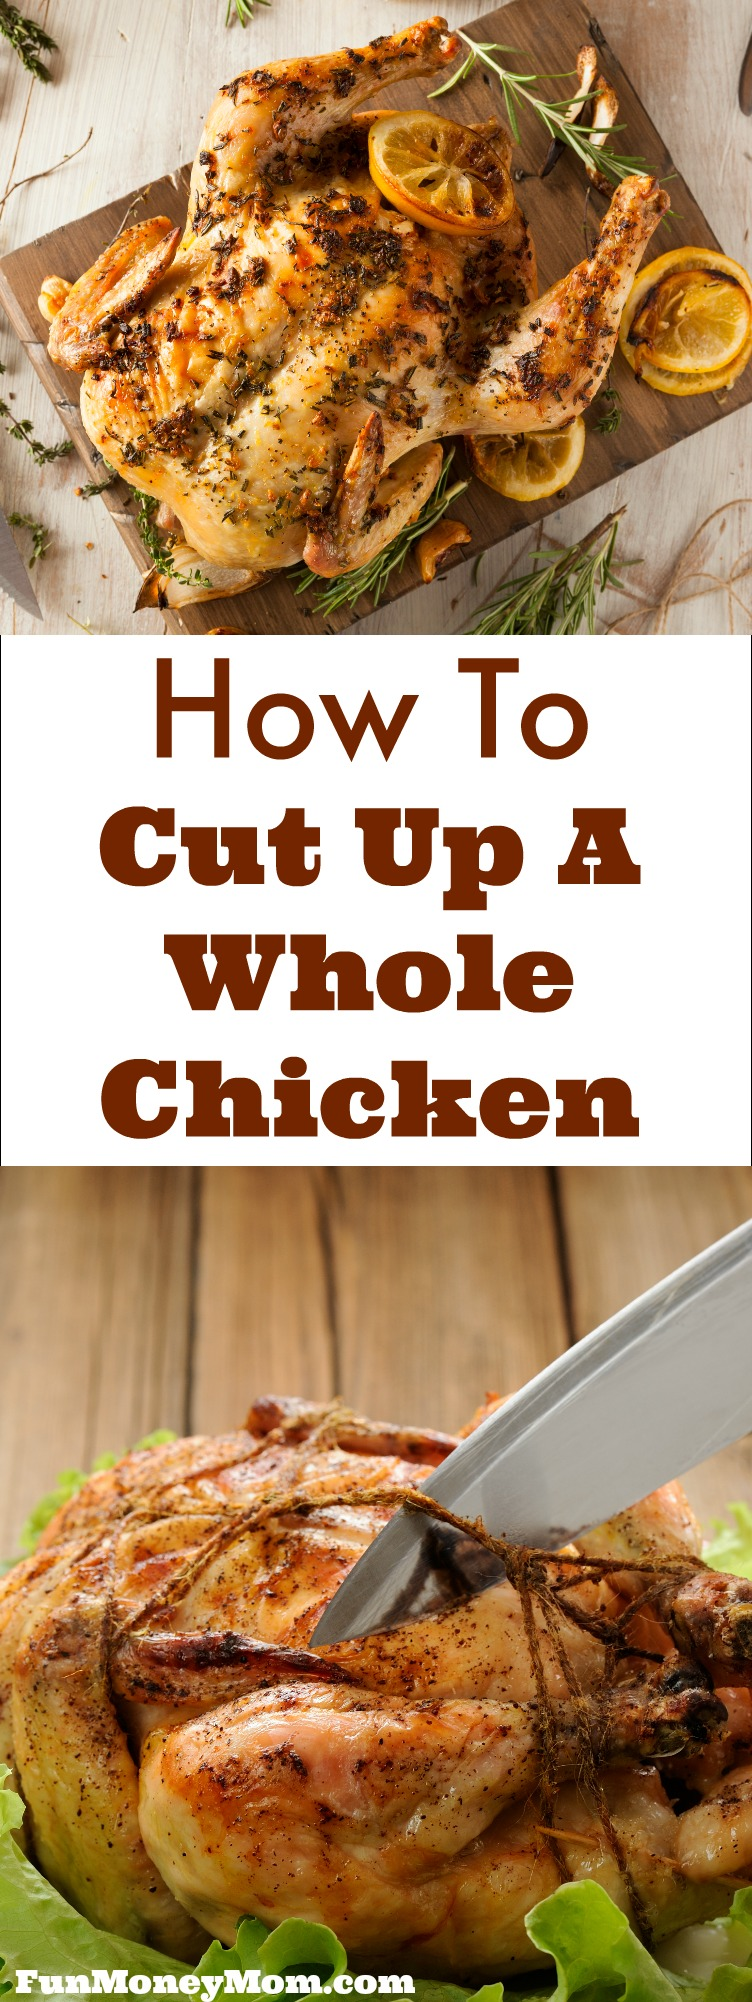 Don't know how to cut a whole chicken? Follow these step by step instructions and in no time, you'll be an expert in cutting chicken!